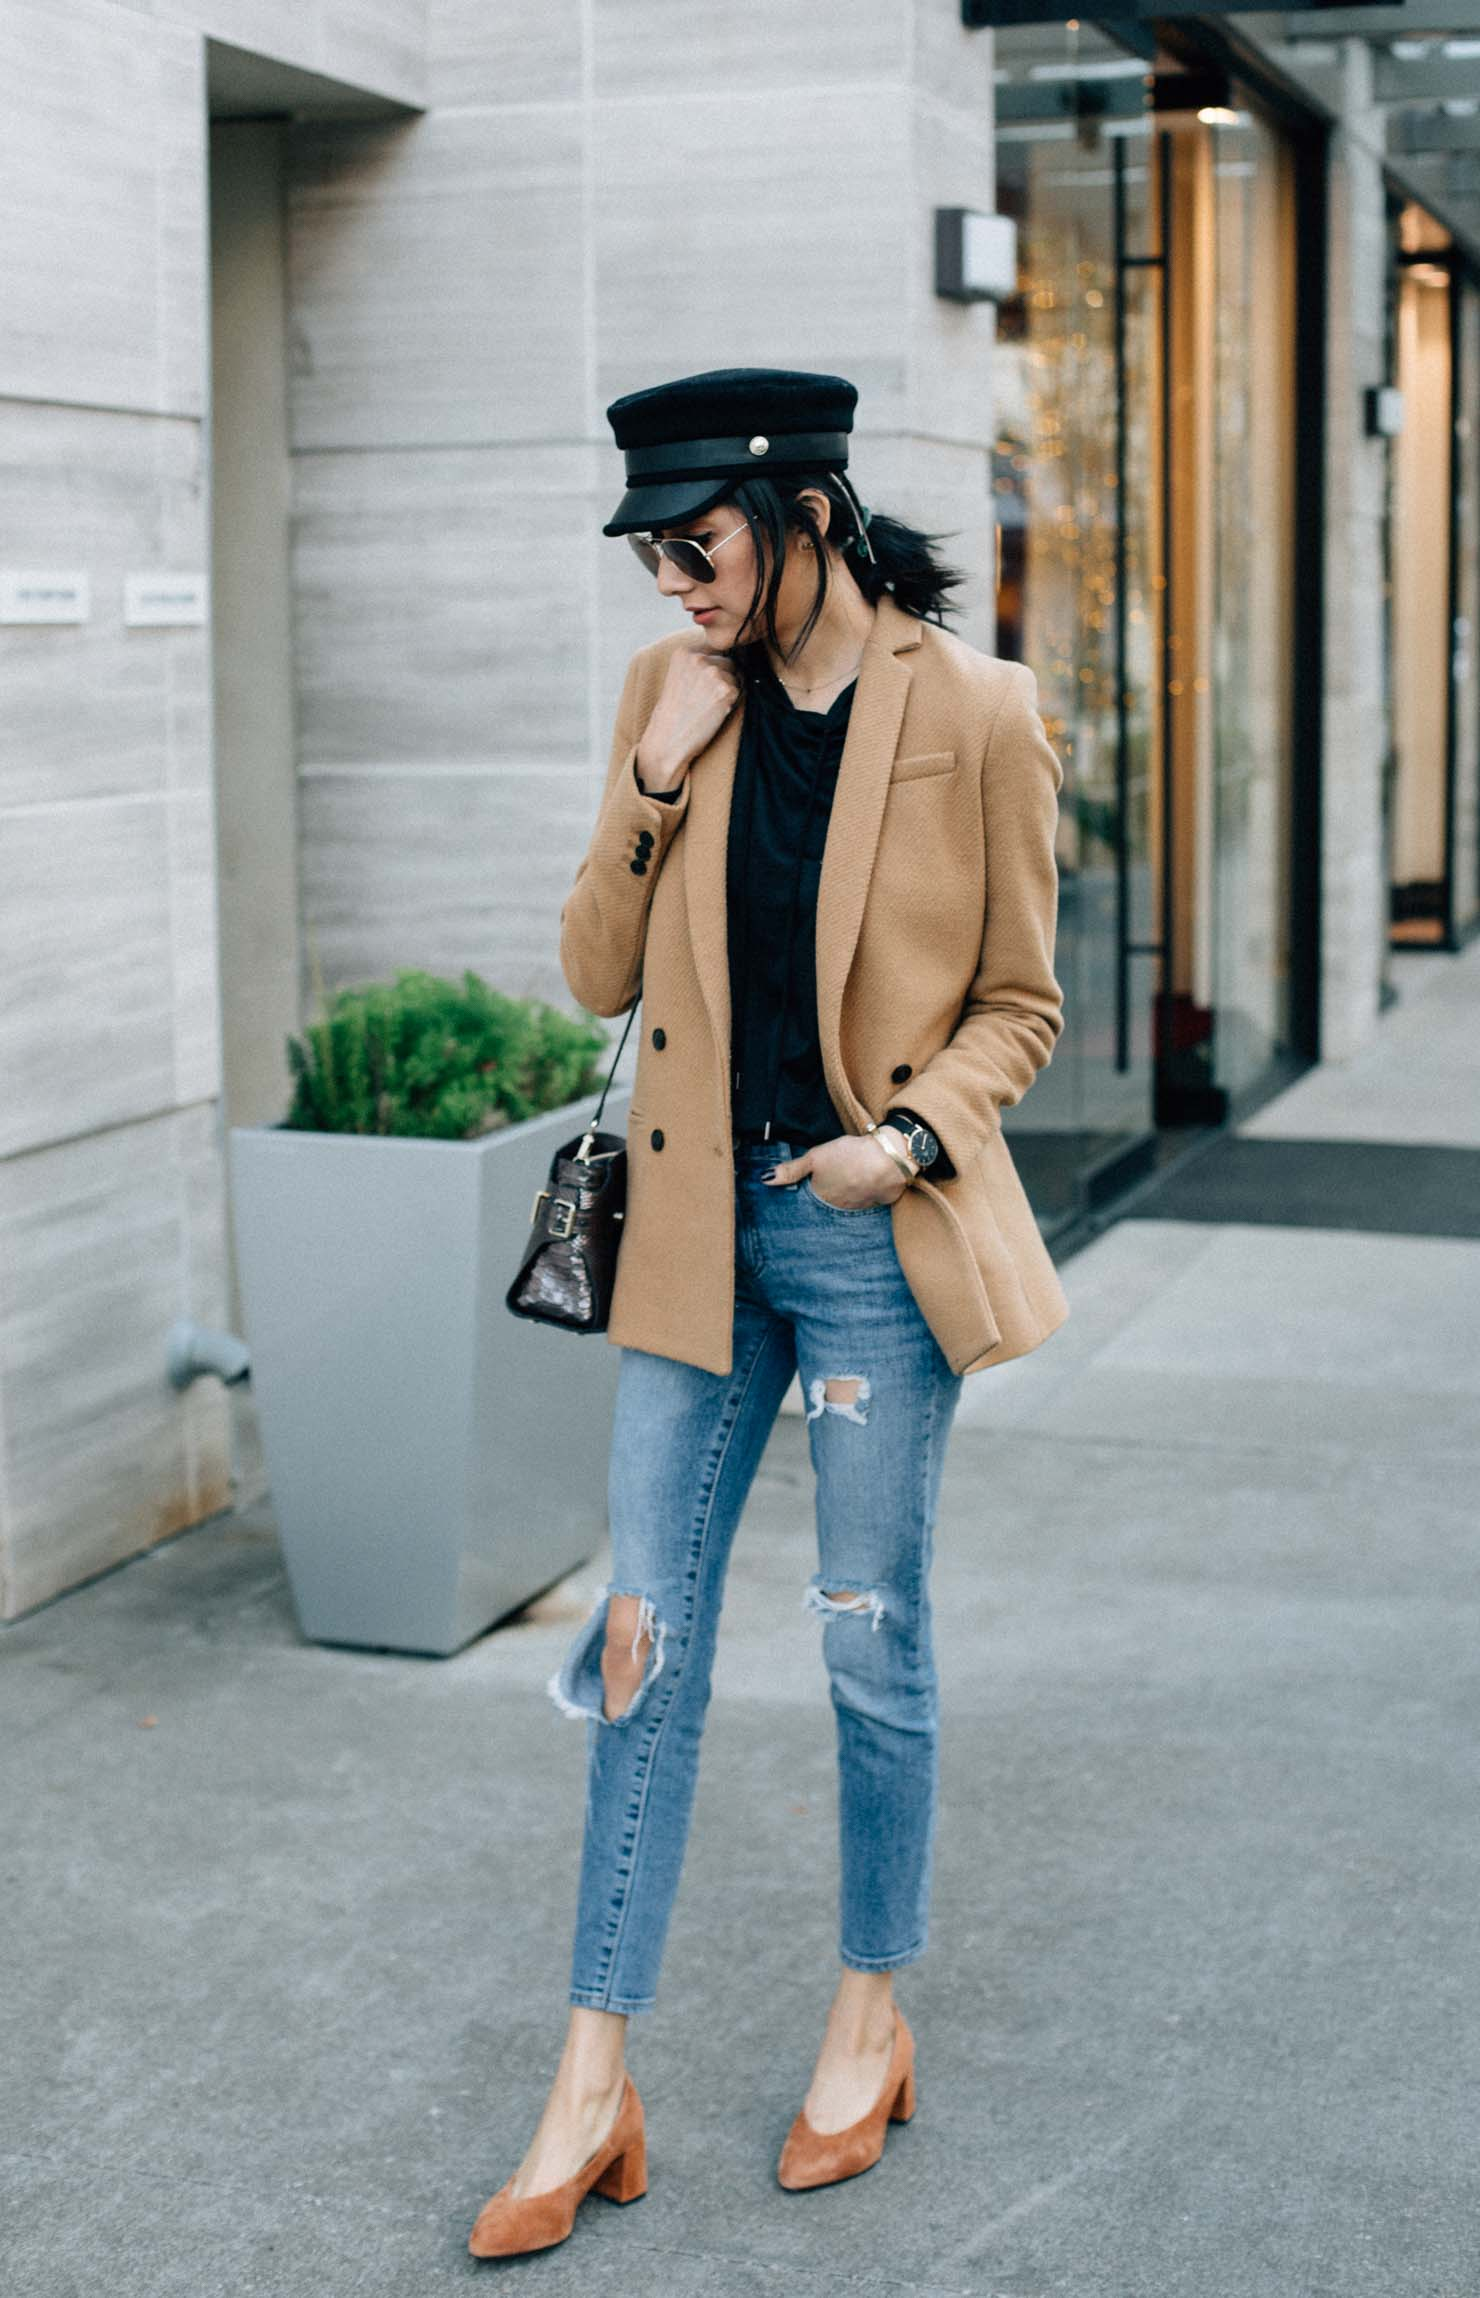 Lilly Beltran of Daily Craving blog wearing an outfit with her favorite black & camel color combination for fall and winter outfits